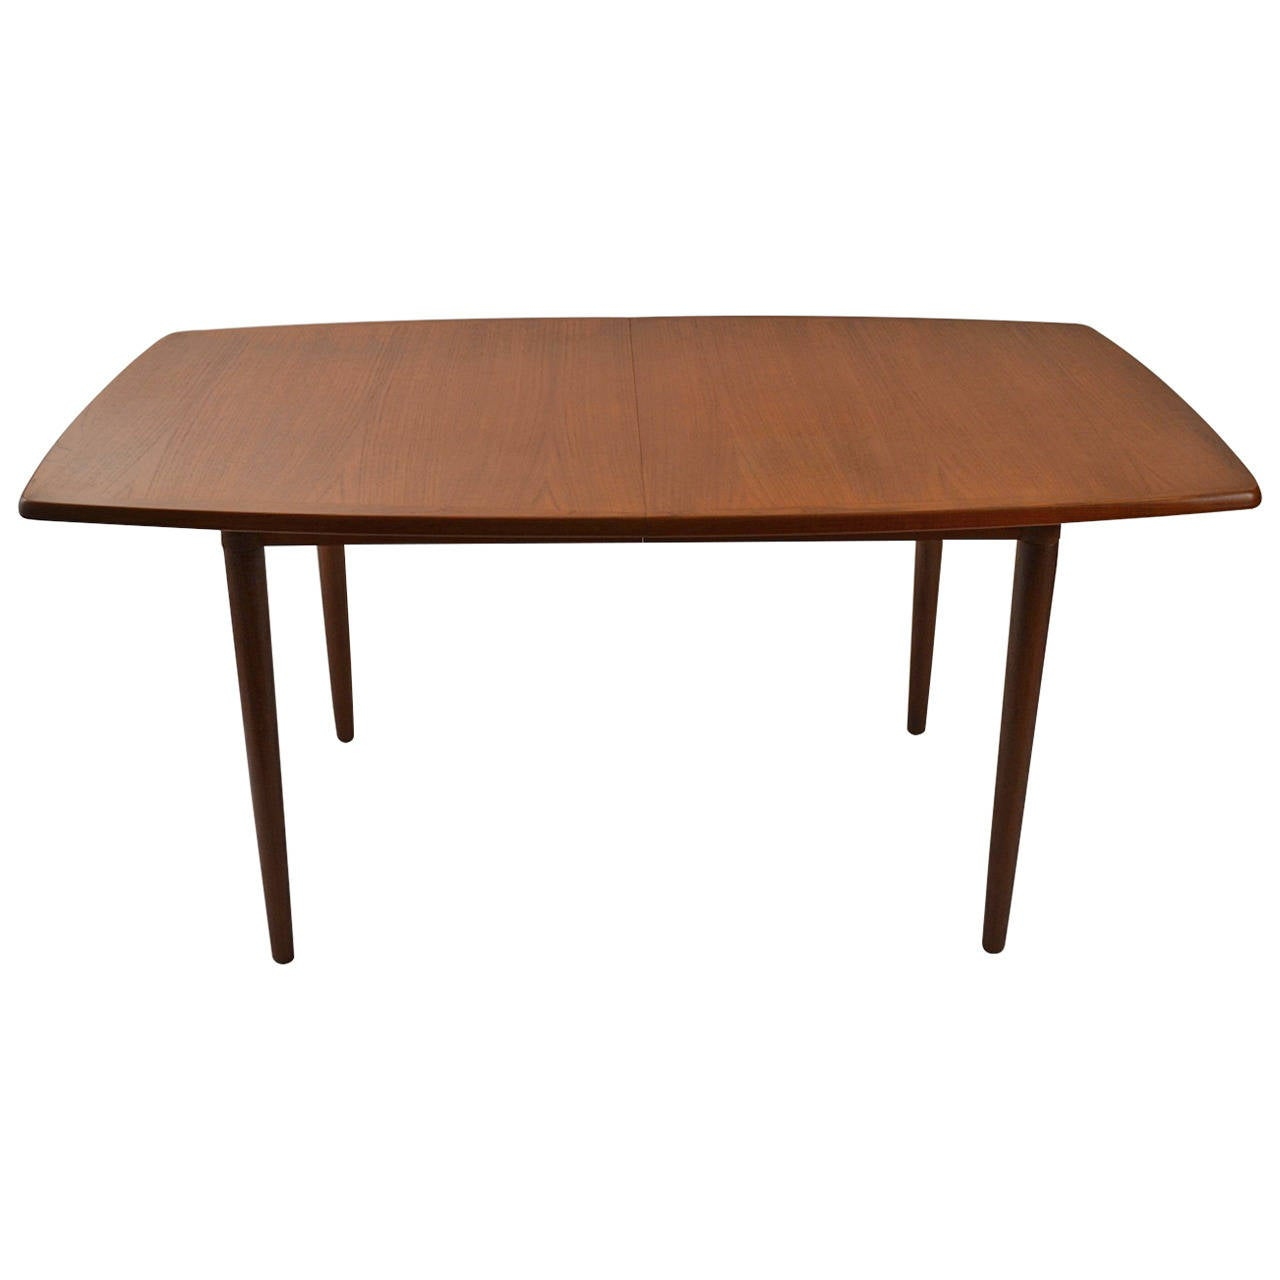 Danish modern teak dining table with two leaves at 1stdibs for Dining room table 2 leaves